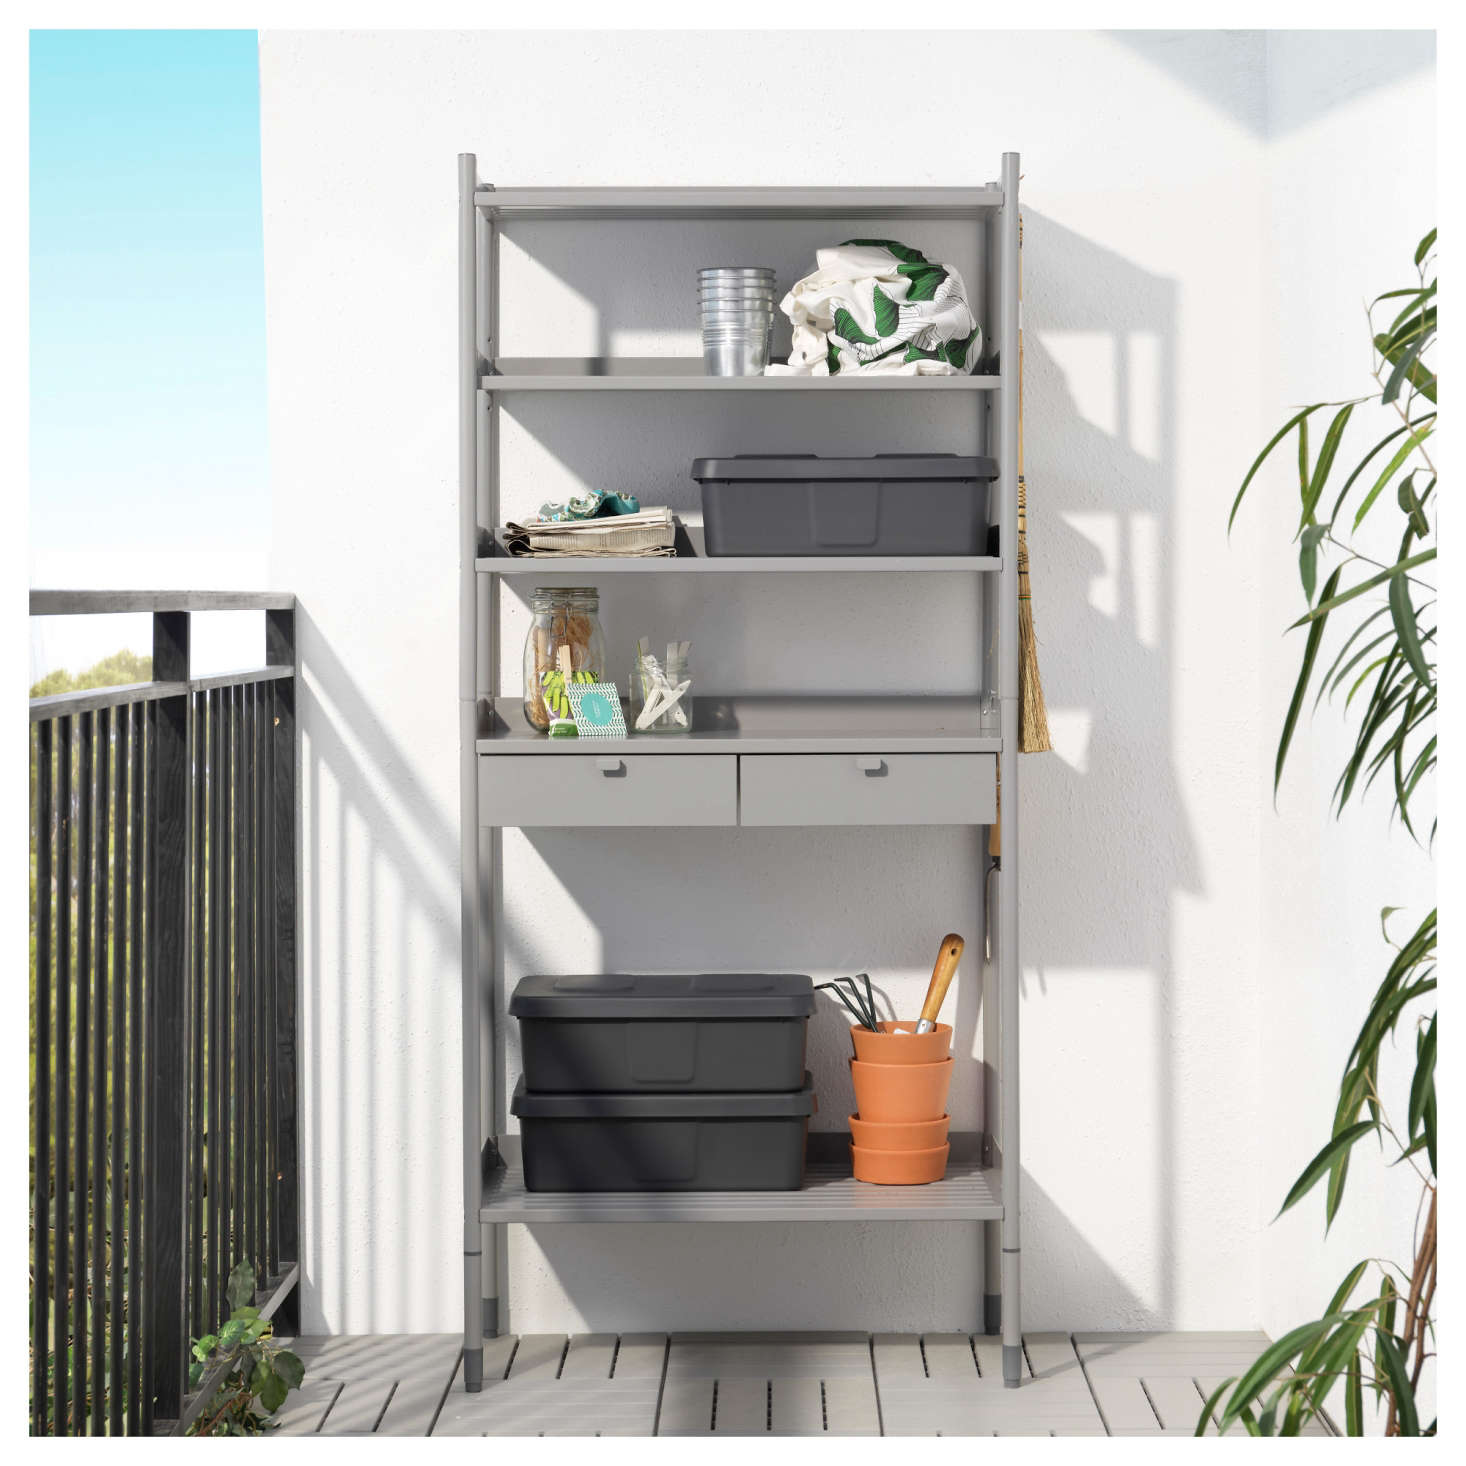 Best Of Ikea 2017 Potting Shed And Garden Storage The Organized Home